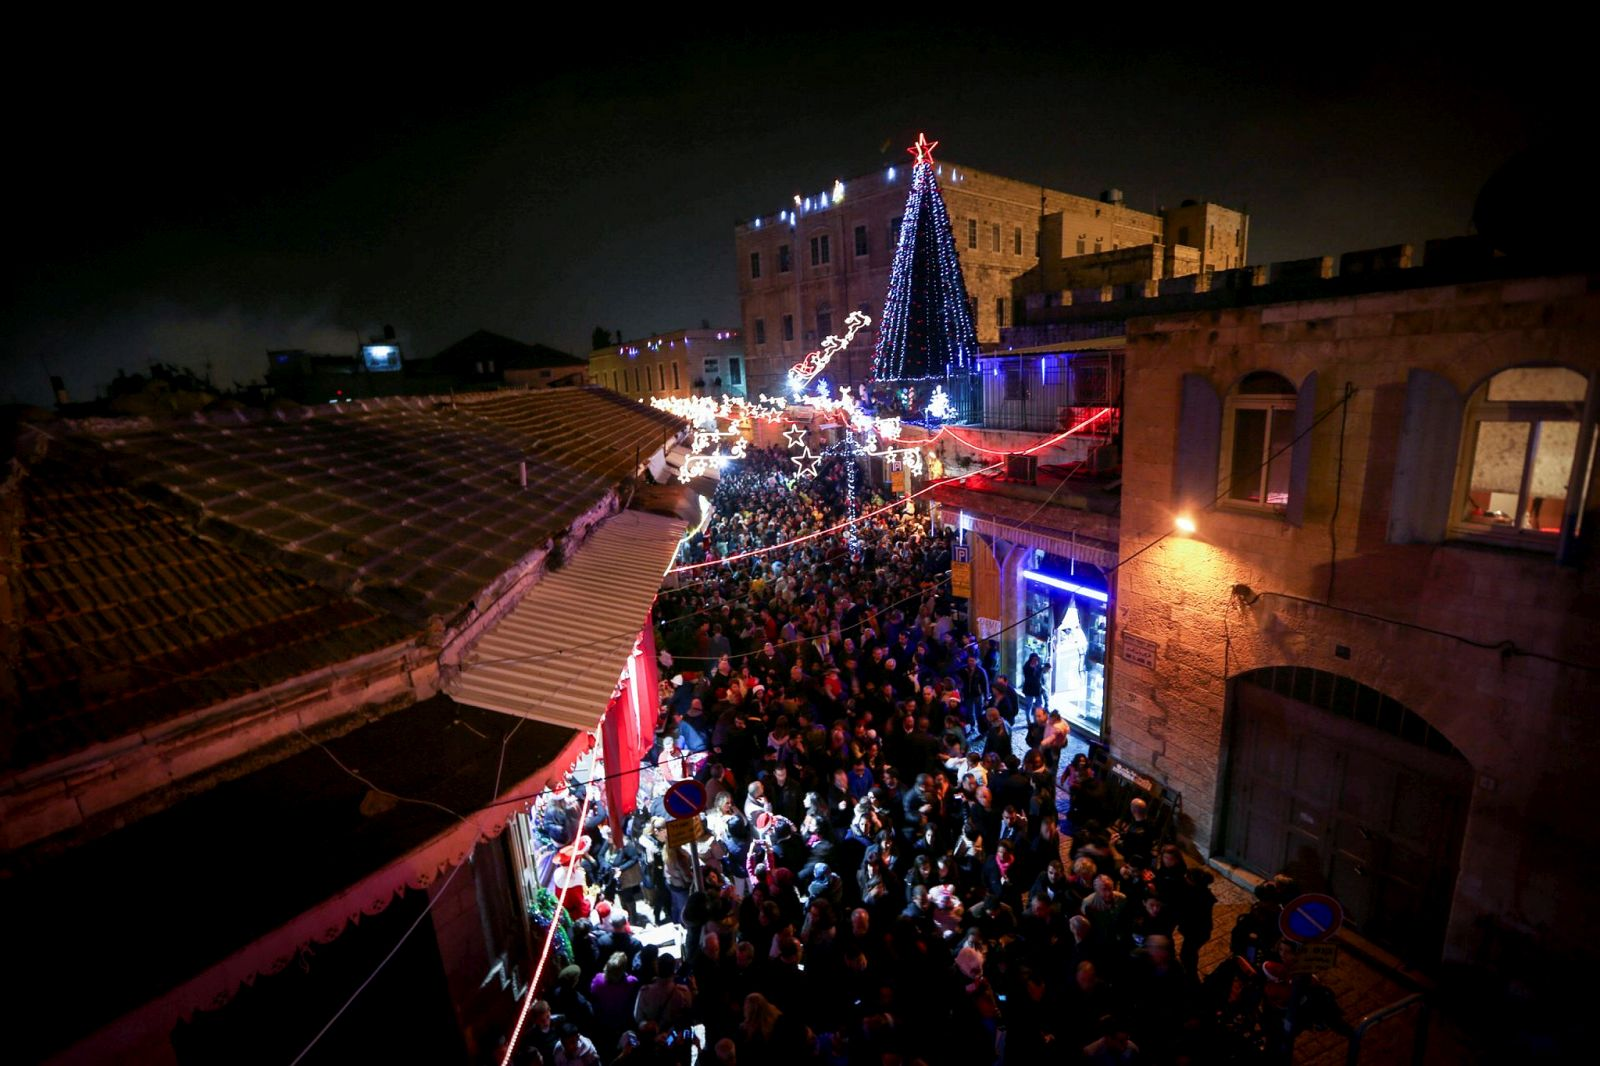 Hundreds of Christians celebrate the lighting of the Christmas tree in the Christian quarter of the Old City Of Jerusalem. Photo by Muath Al Khatib/Flash90.